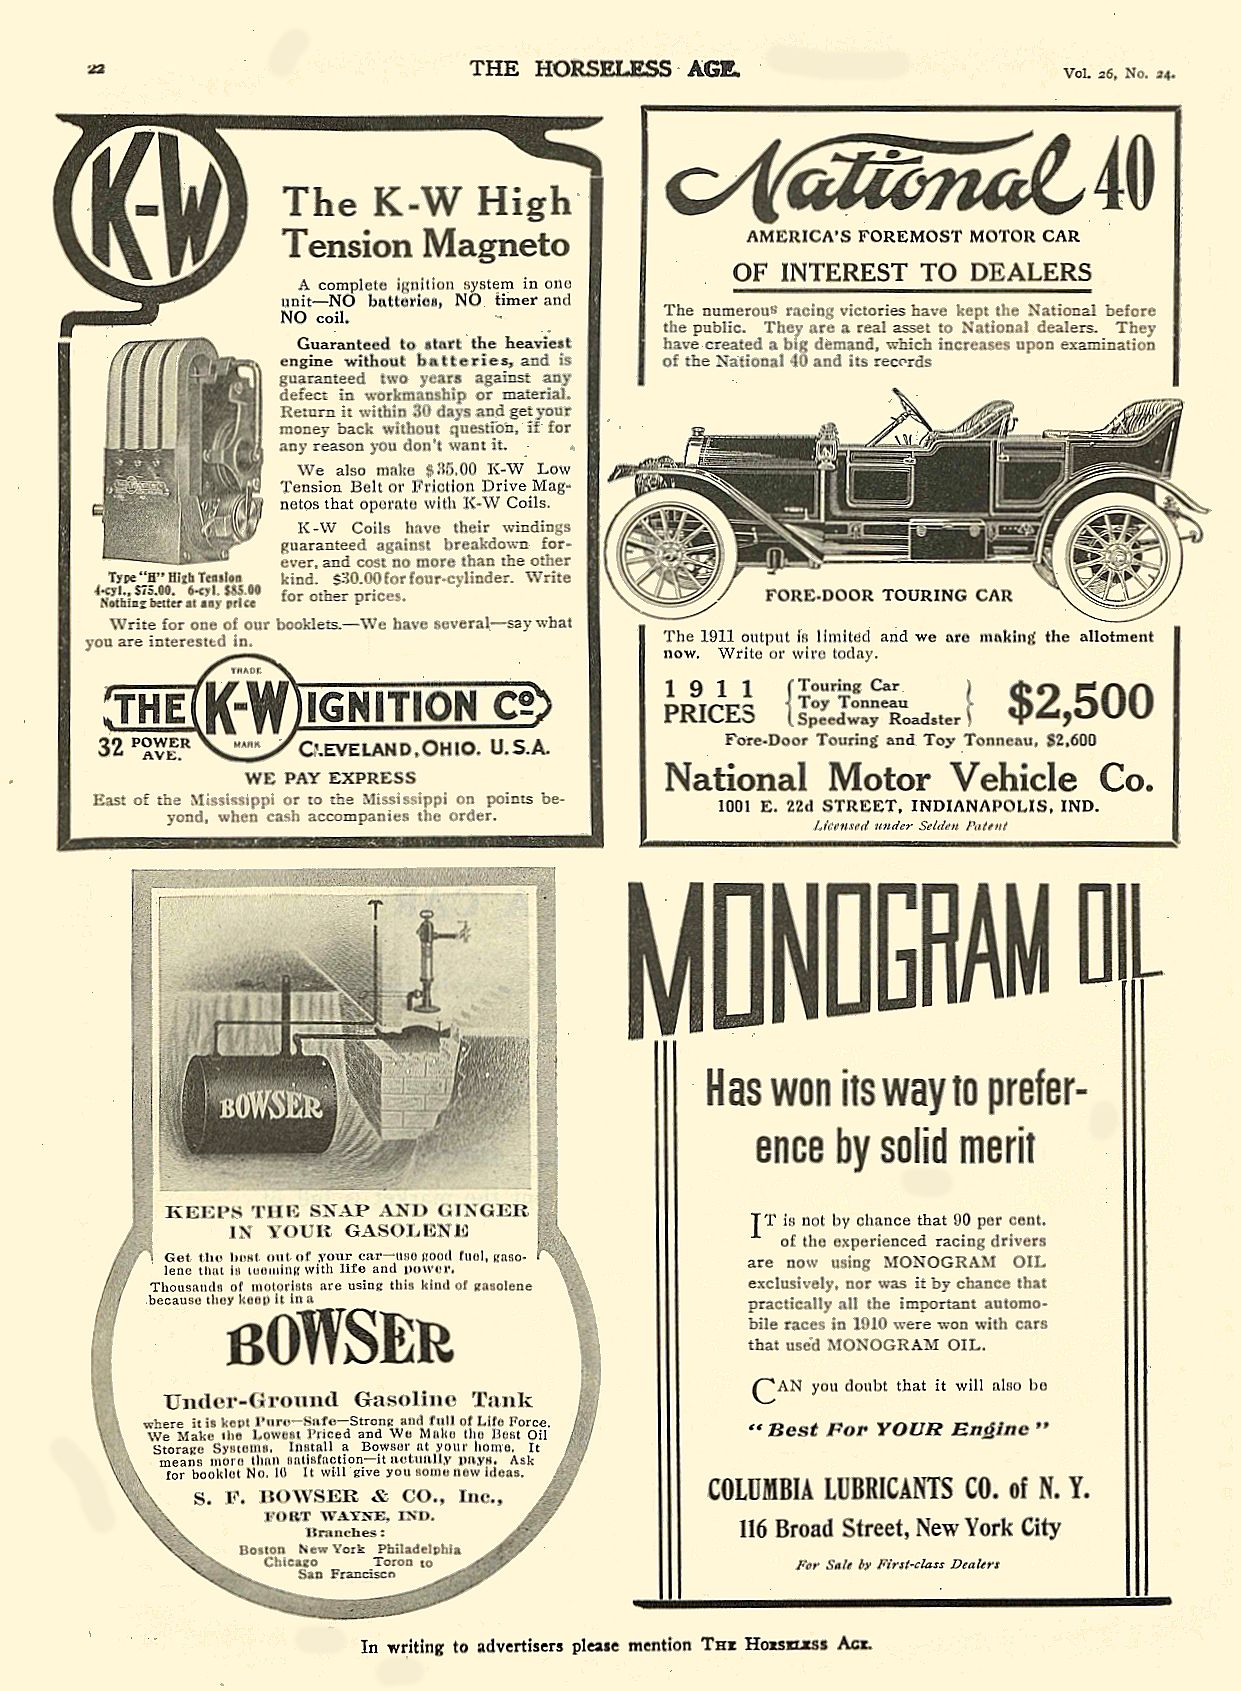 1911 12 14 NATIONAL National 40 America's Foremost Motor Car National Motor Vehicle Co. Indianapolis, IND THE HORSELESS AGE December 14, 1910 8.5″x11.75″ page 22